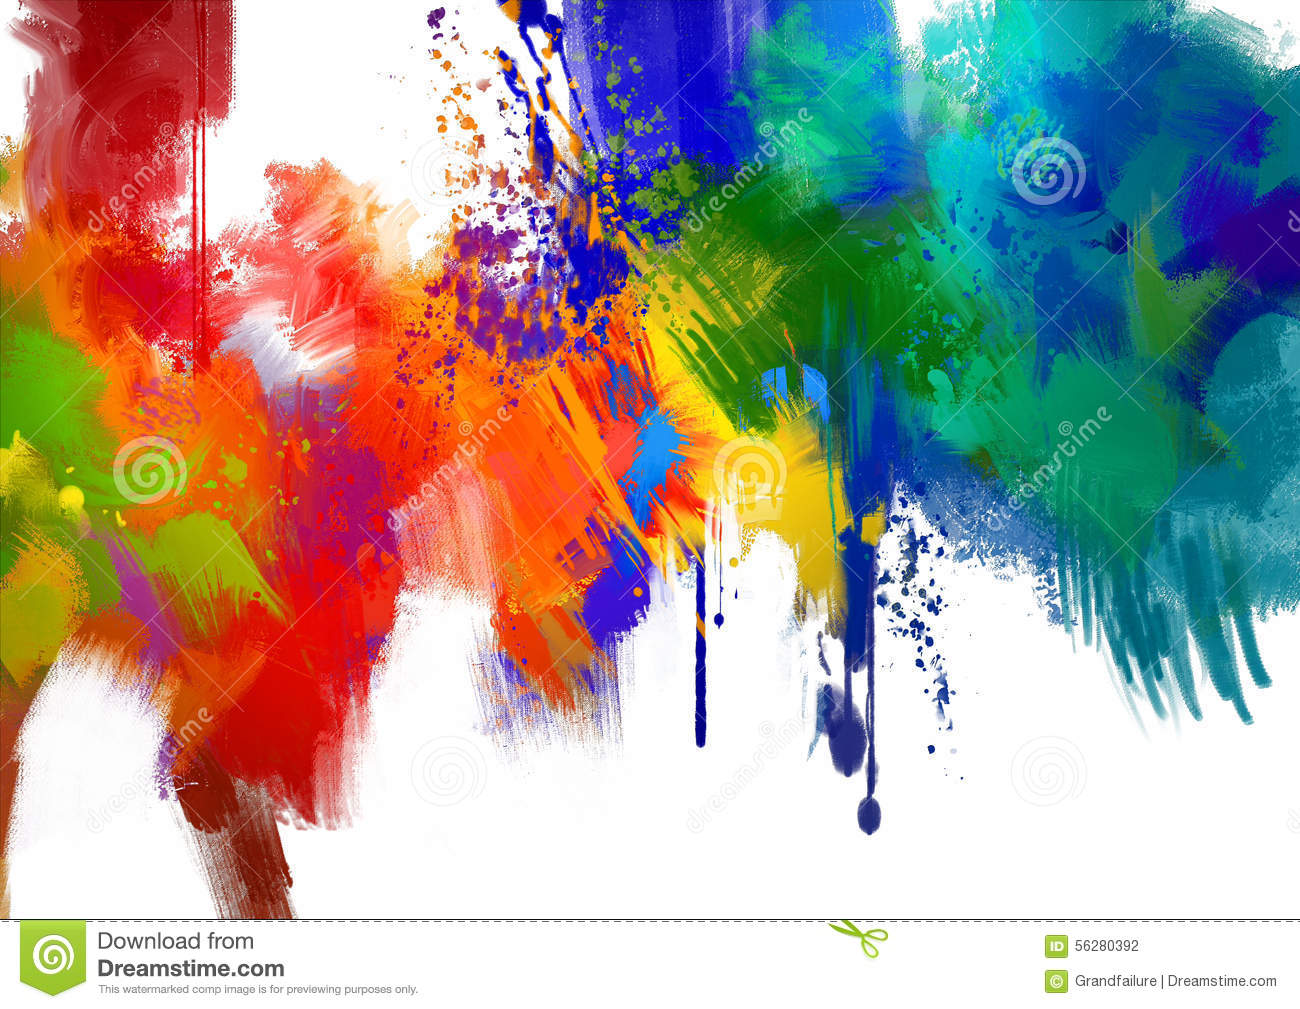 Royalty Free Illustration. Download Abstract Colorful Paint ...